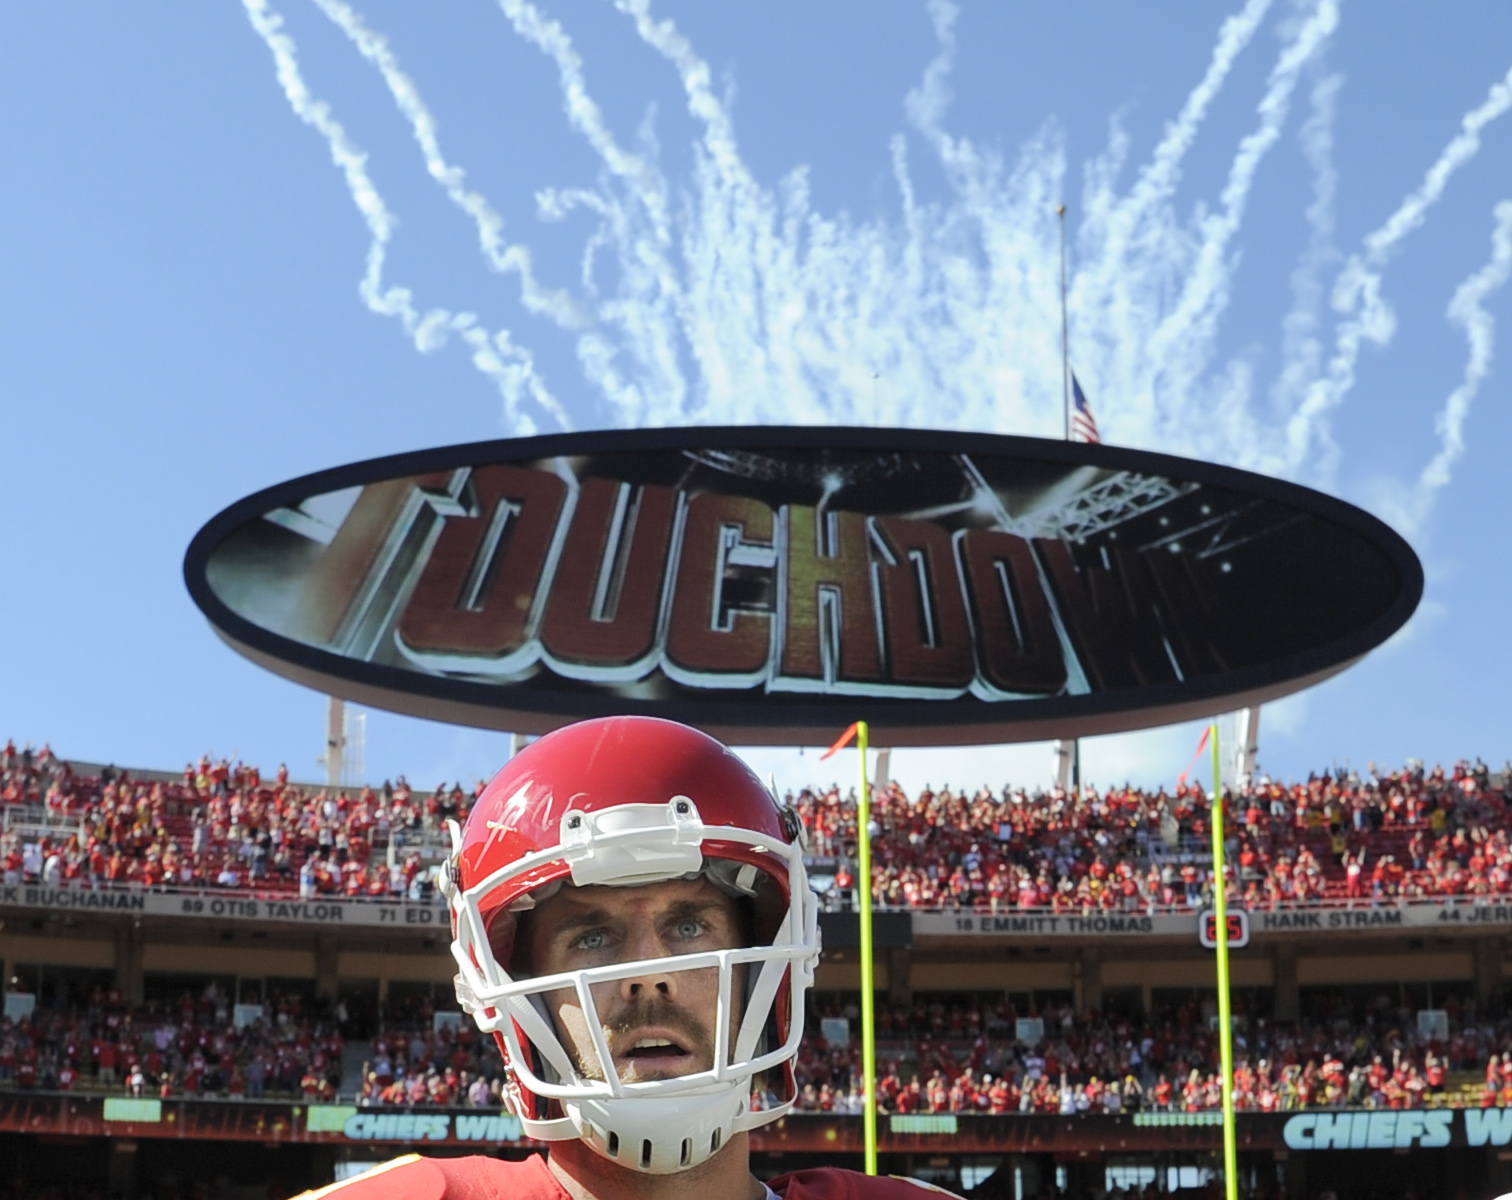 Kansas City Chiefs quarterback Alex Smith (11) pauses after he scored the winning touchdown against the San Diego Chargers in overtime in an NFL football game in Kansas City, Mo., Sunday, Sept. 11, 2016. The Kansas City Chiefs won 33-27. (AP Photo/Ed Zurg